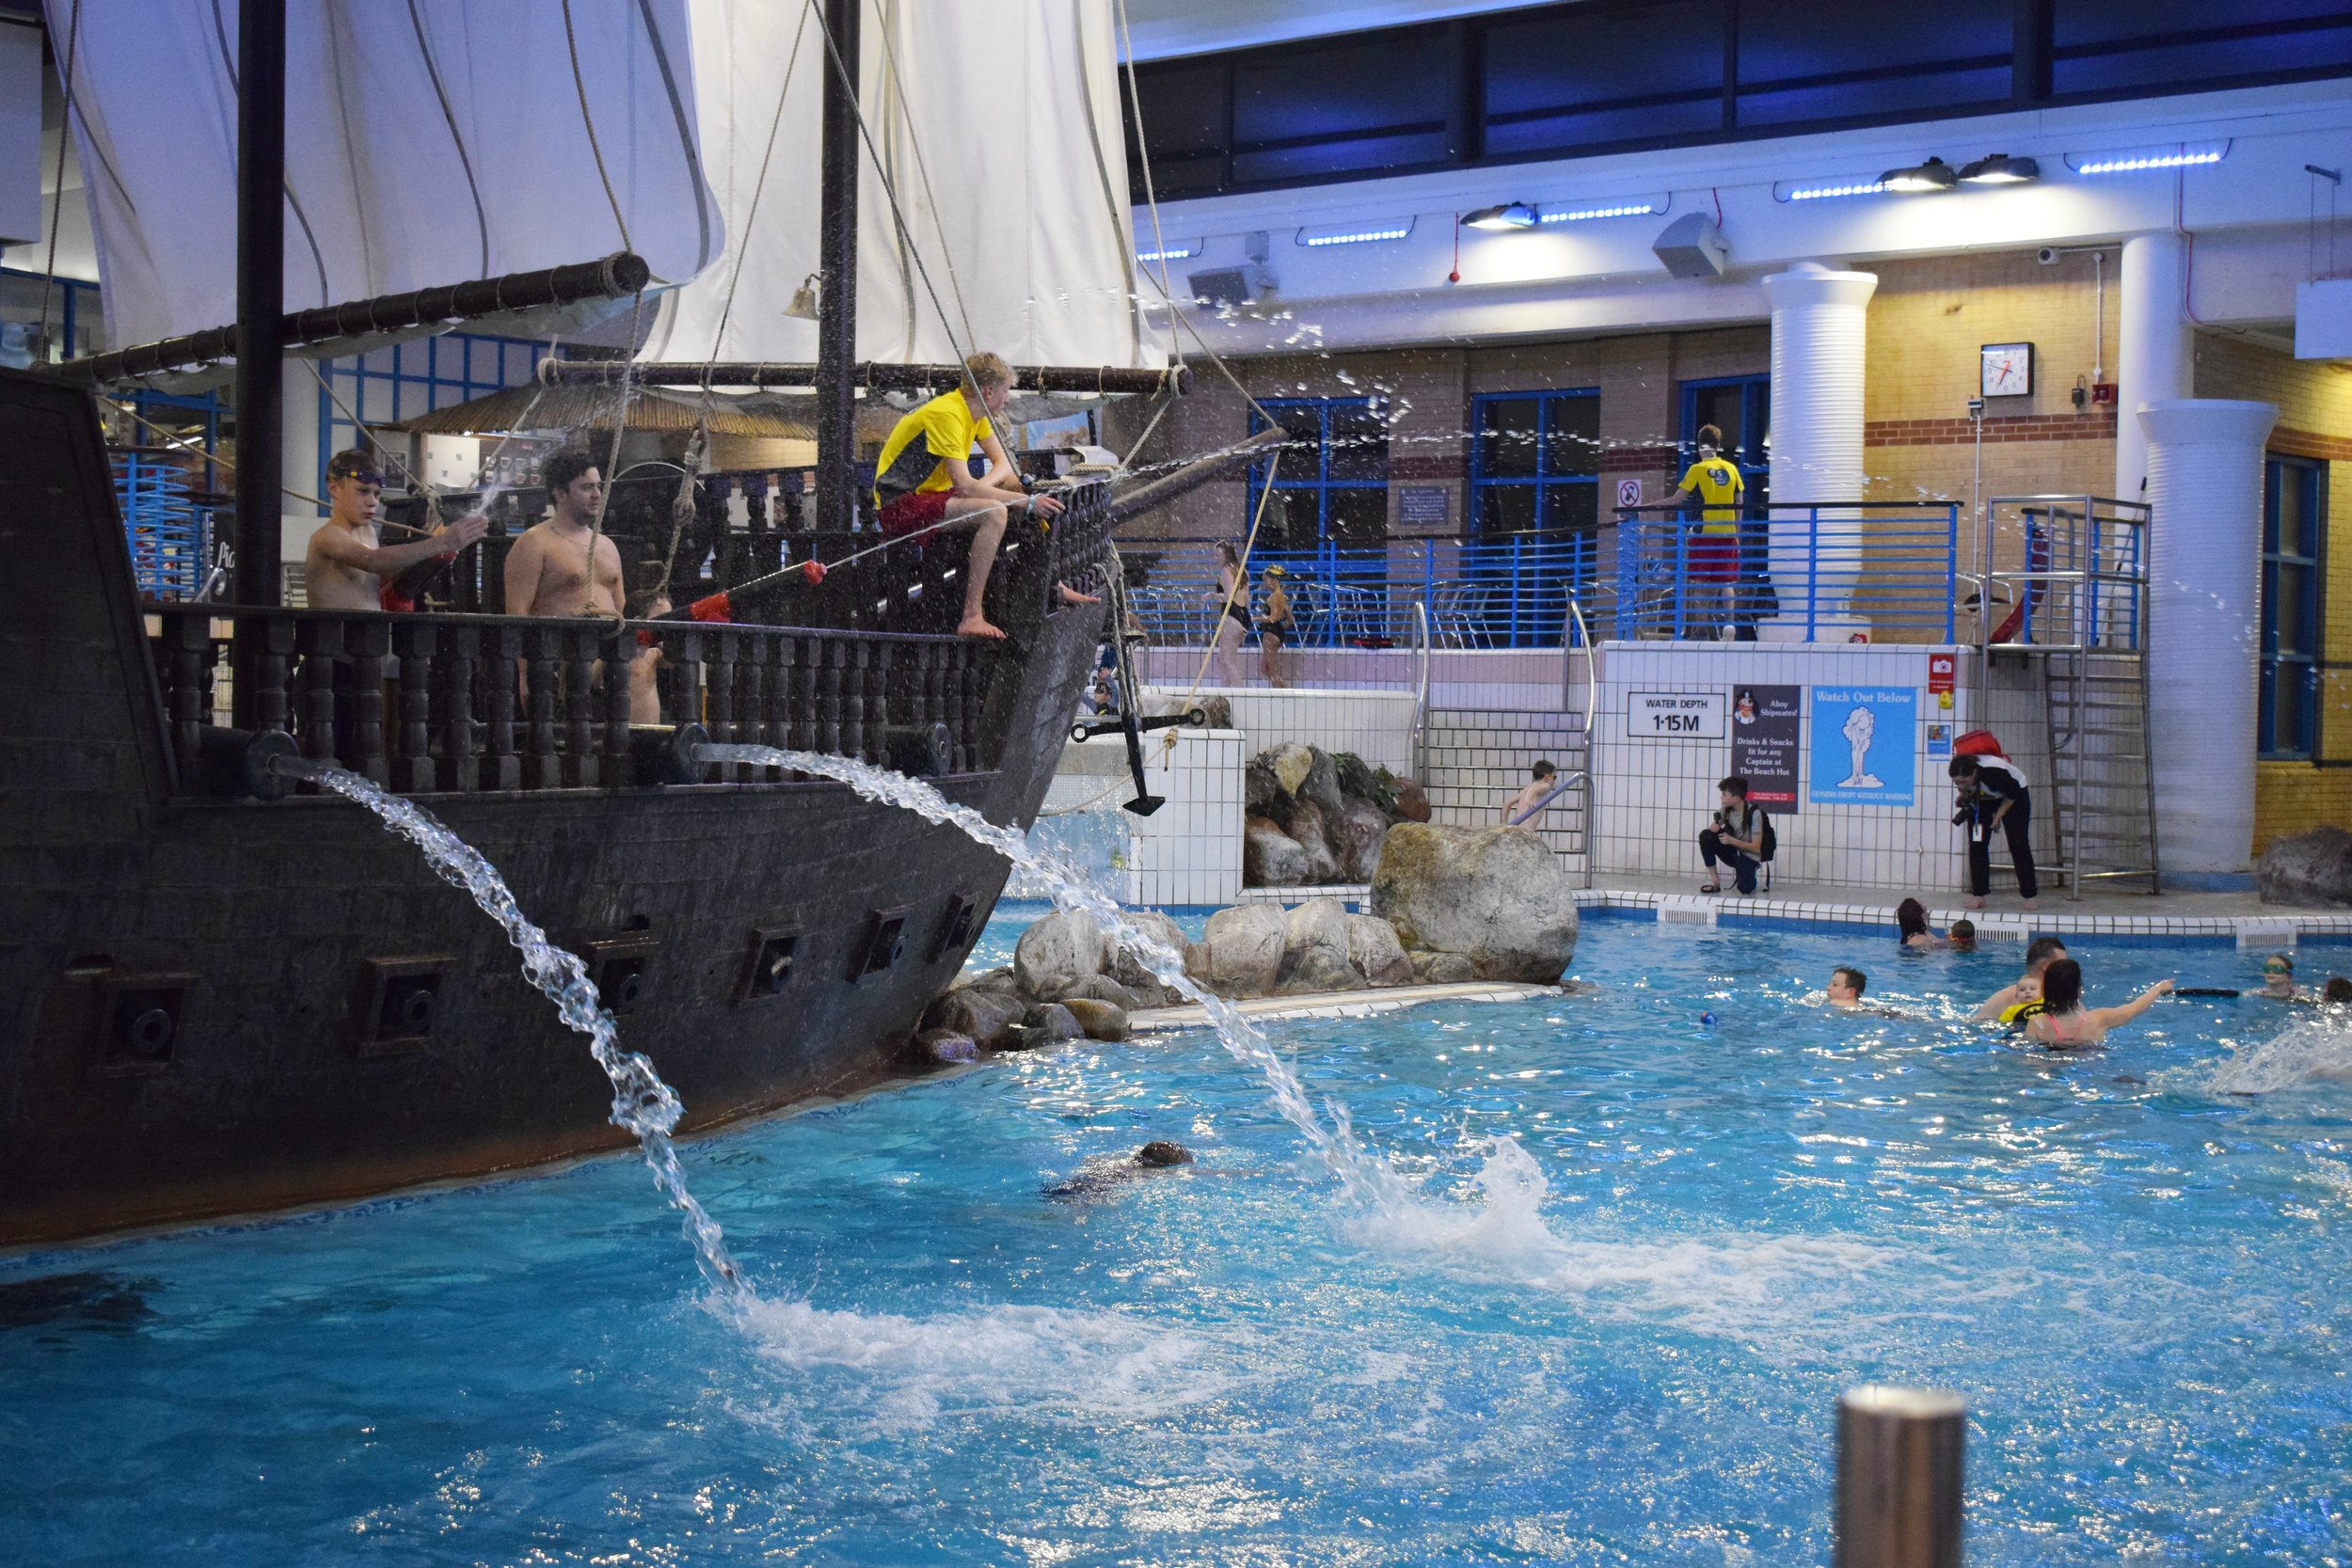 Coral Reef Waterworld in Bracknell Pirate Ship Cannons